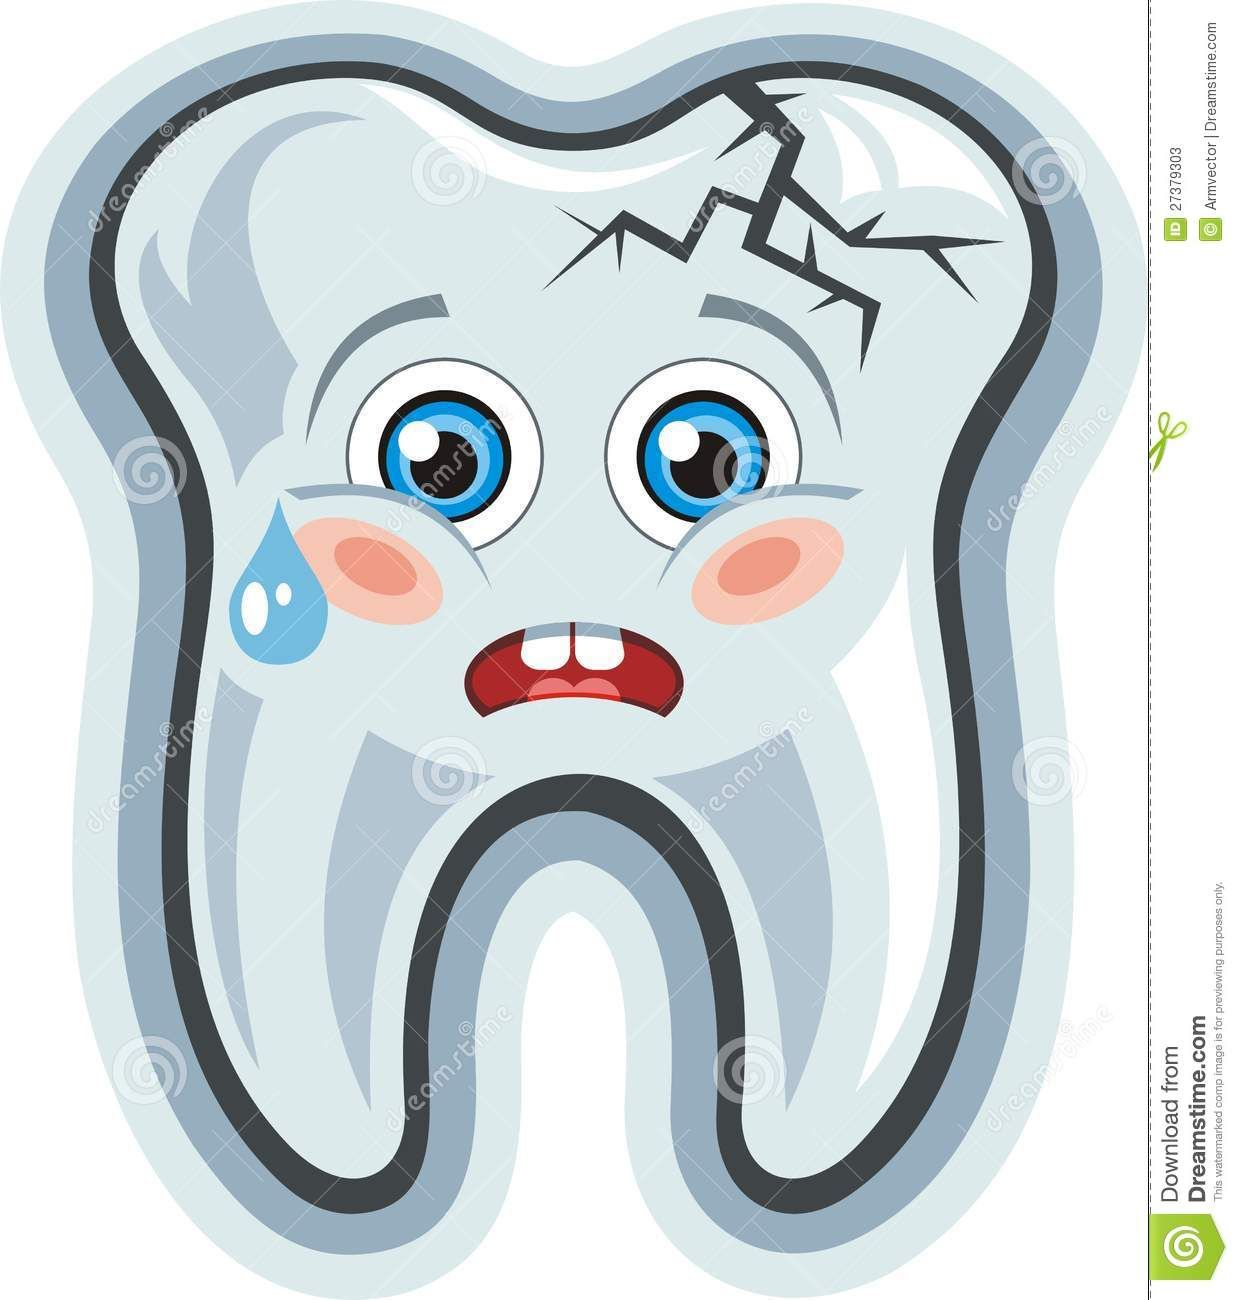 Cartoon Tooth.Toothache Stock Photos - Image: 27379303 | IMAGENES ...